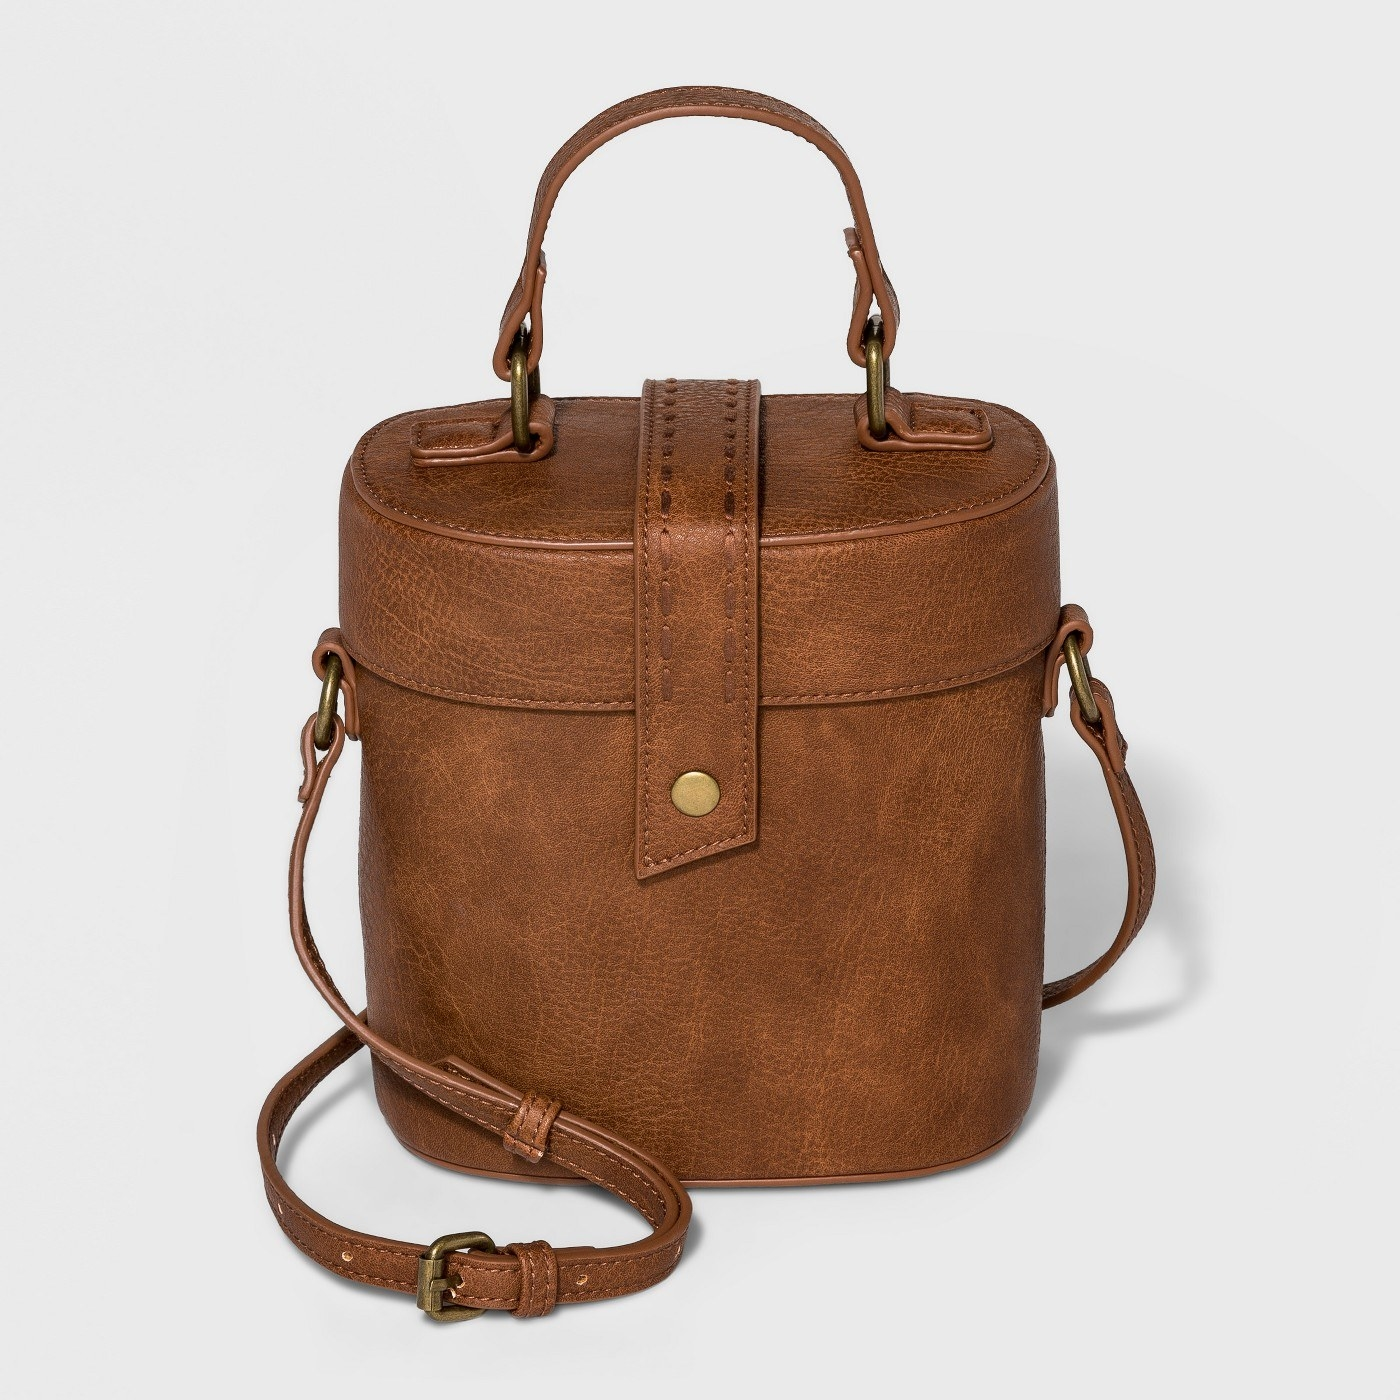 95be136cd6 21 Of The Best Places To Buy Handbags And Purses Online In 2018